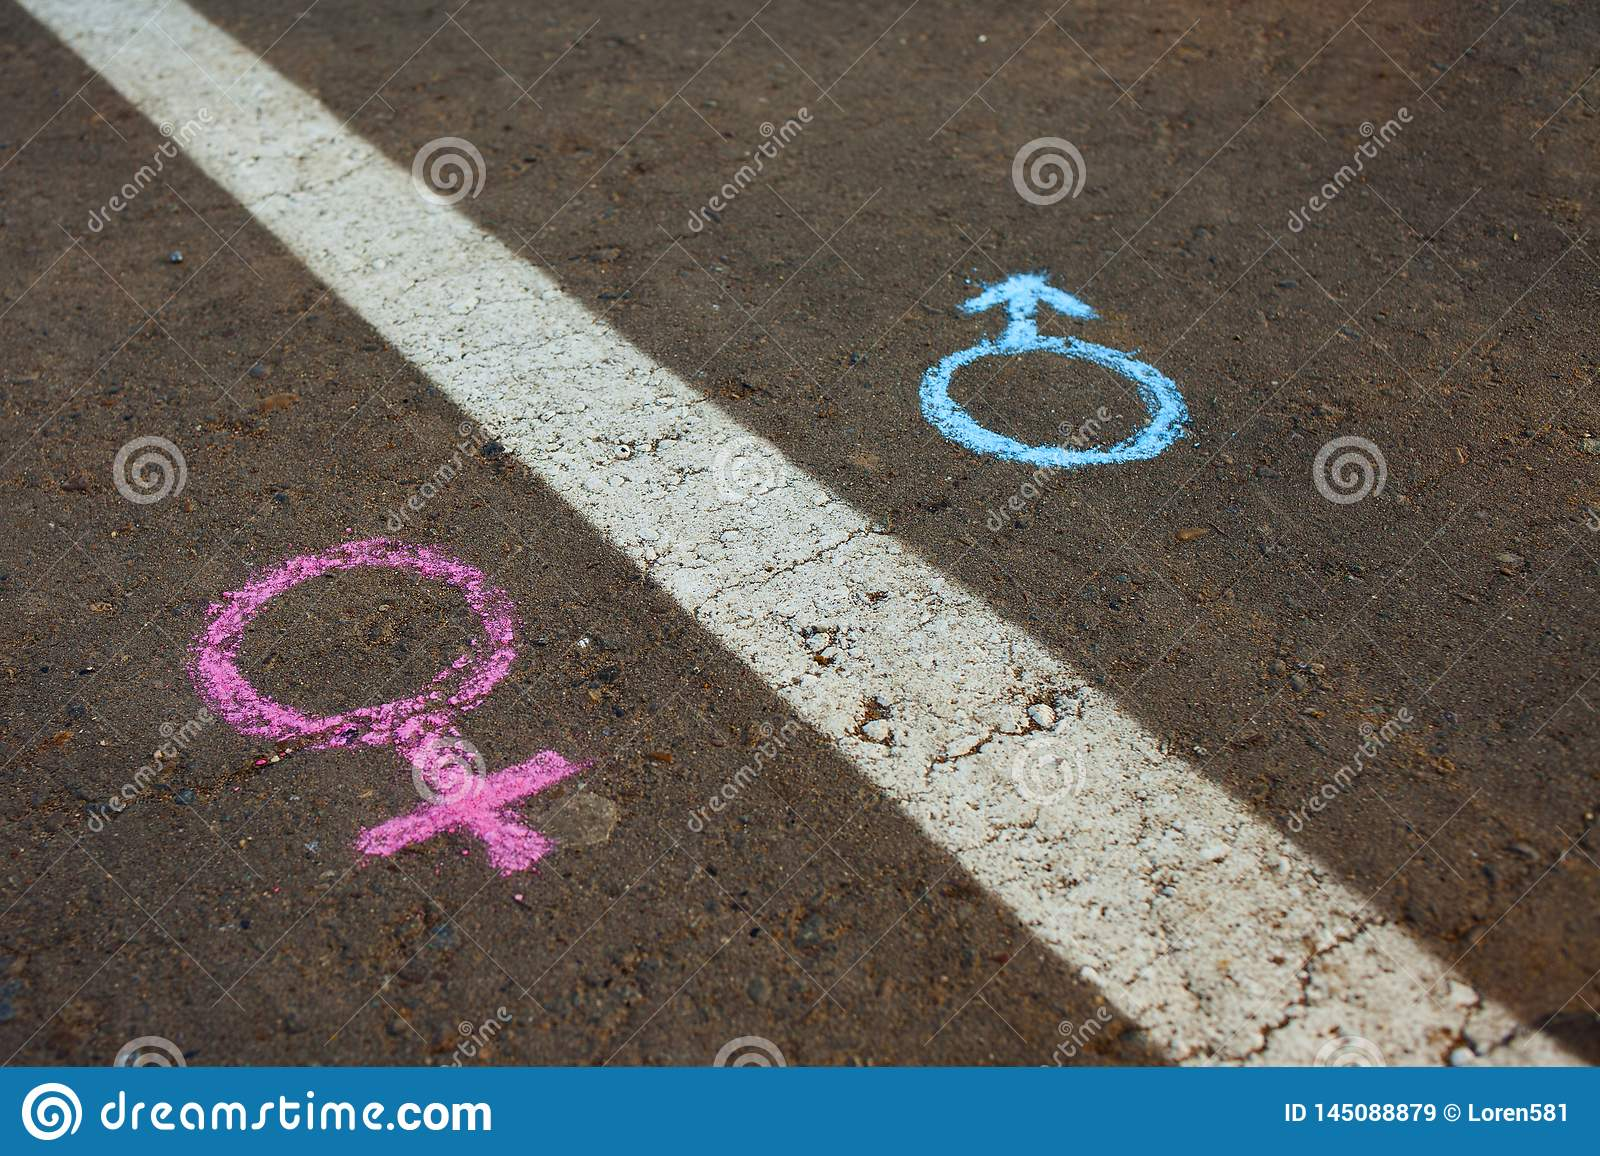 Gender symbols or signs for male and female drawn with chalk on asphalt. The concept of gender equality